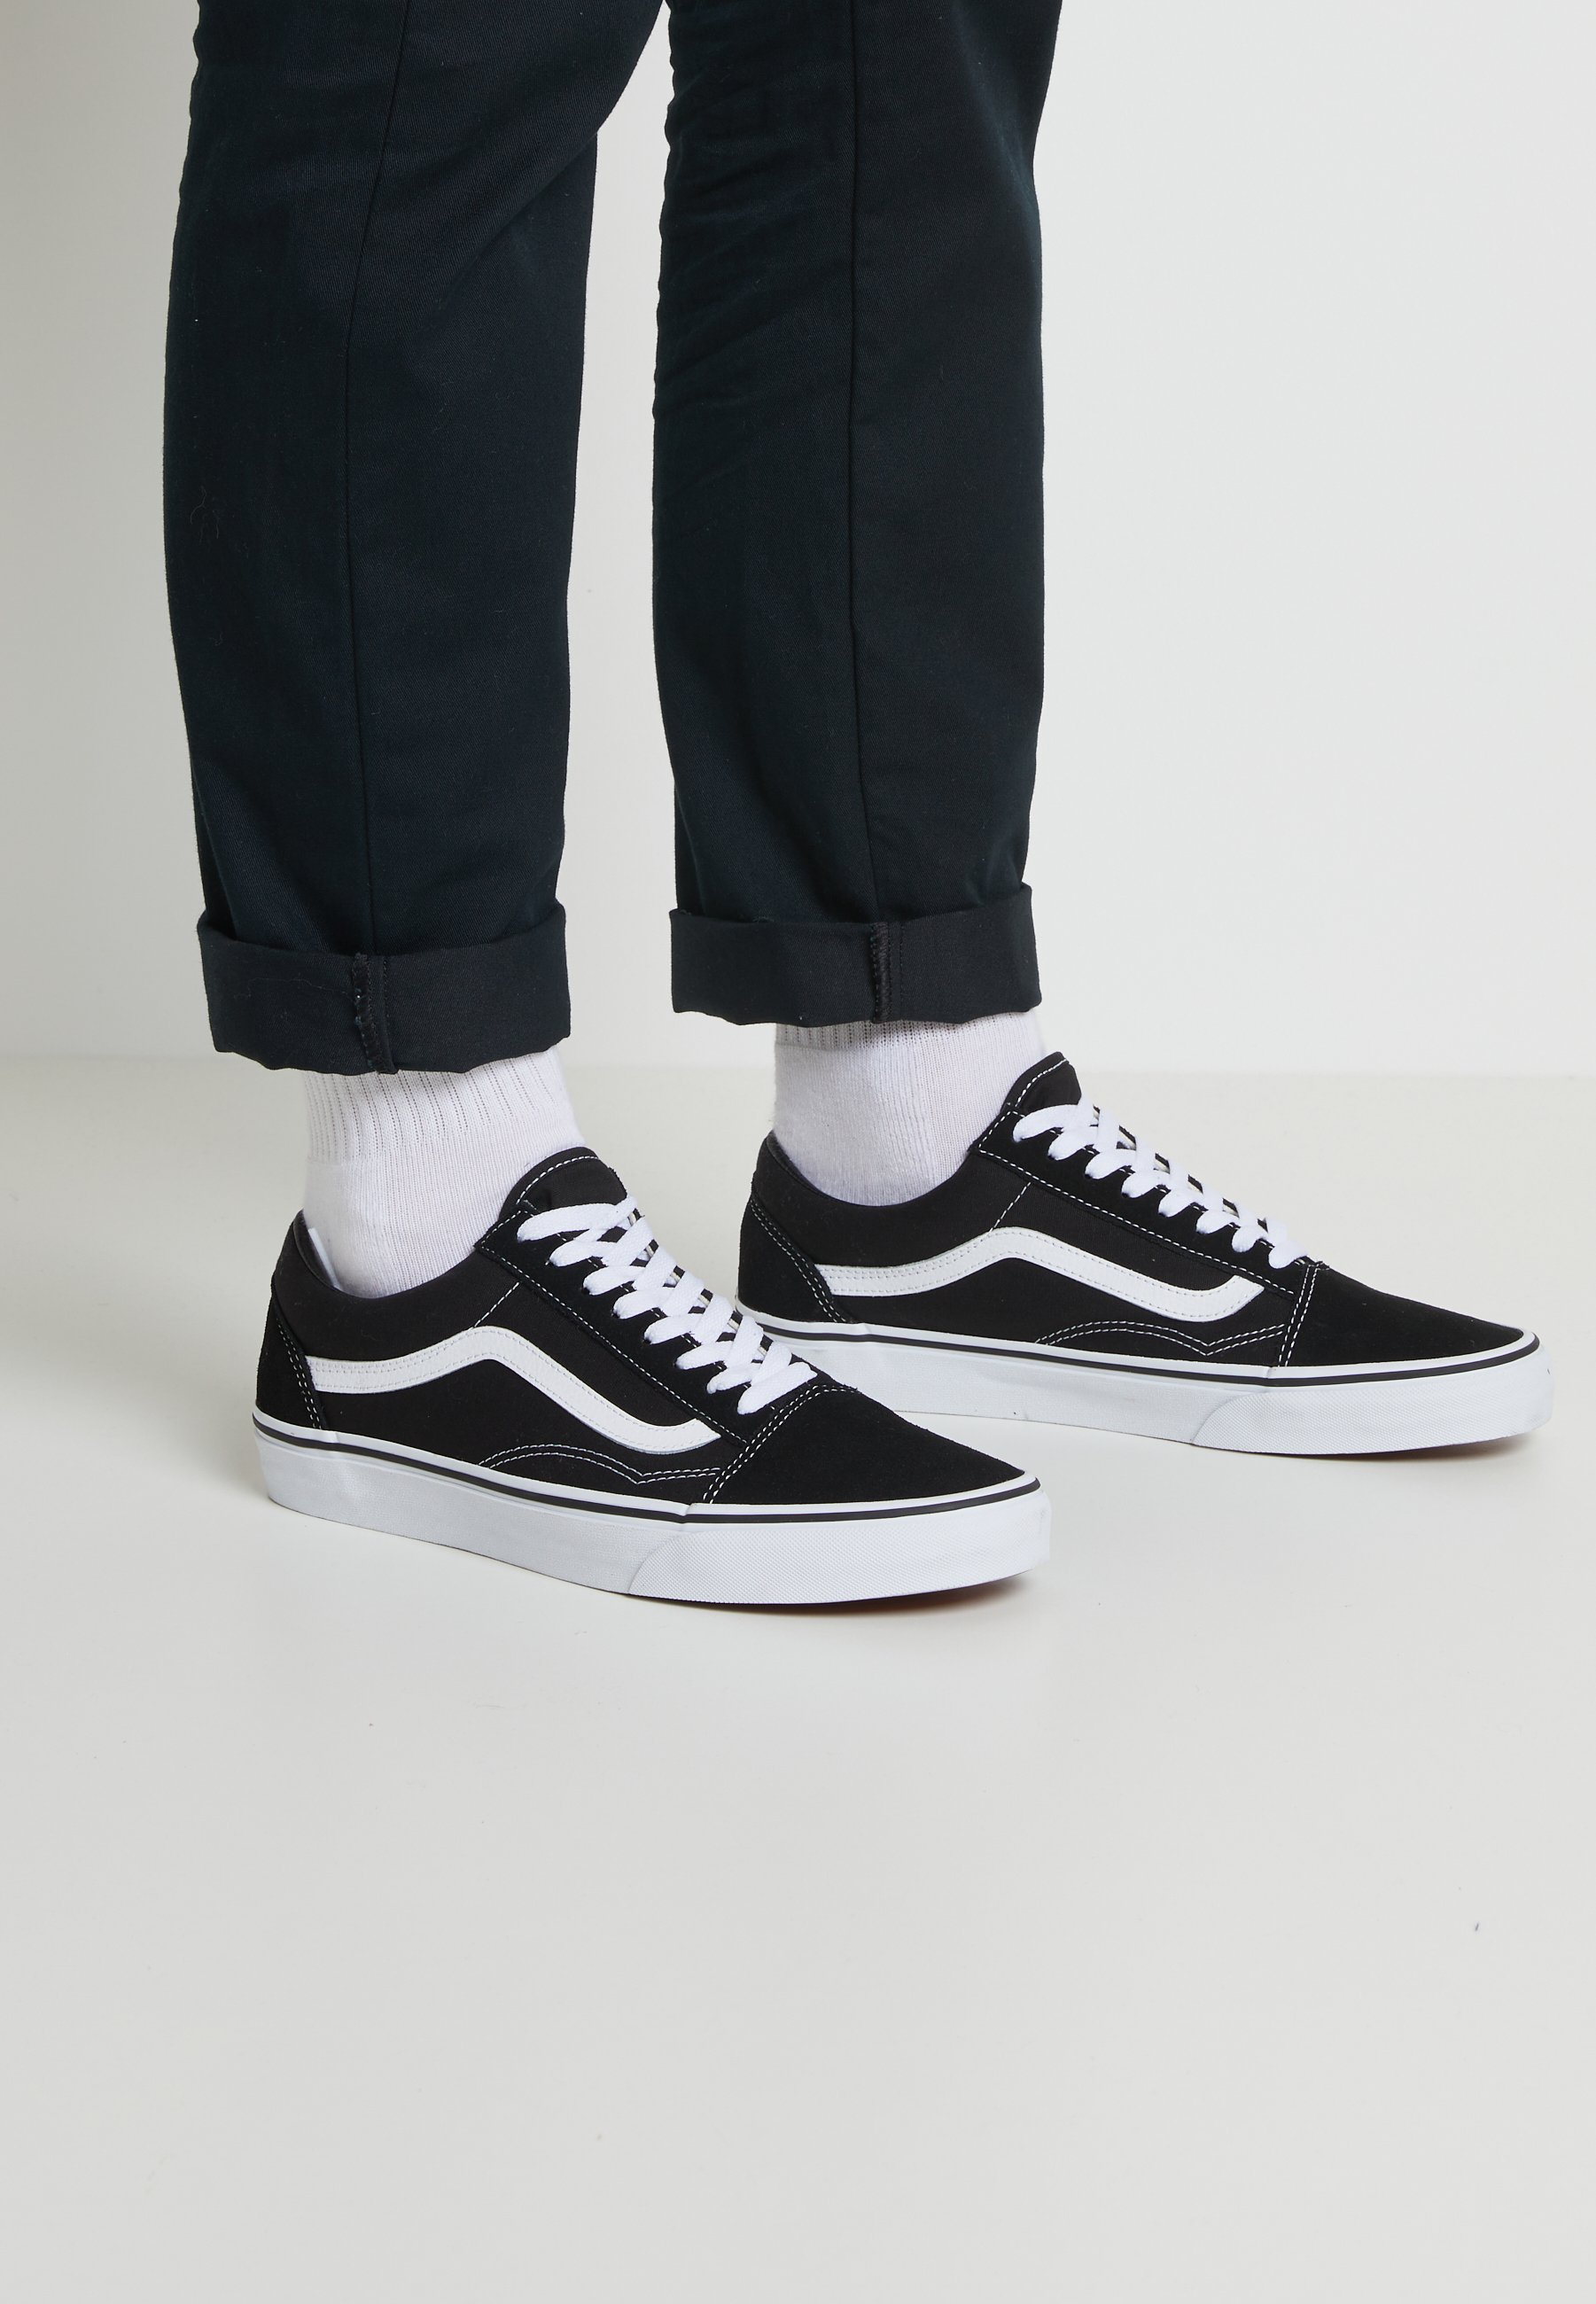 OLD SKOOL Skate shoes black